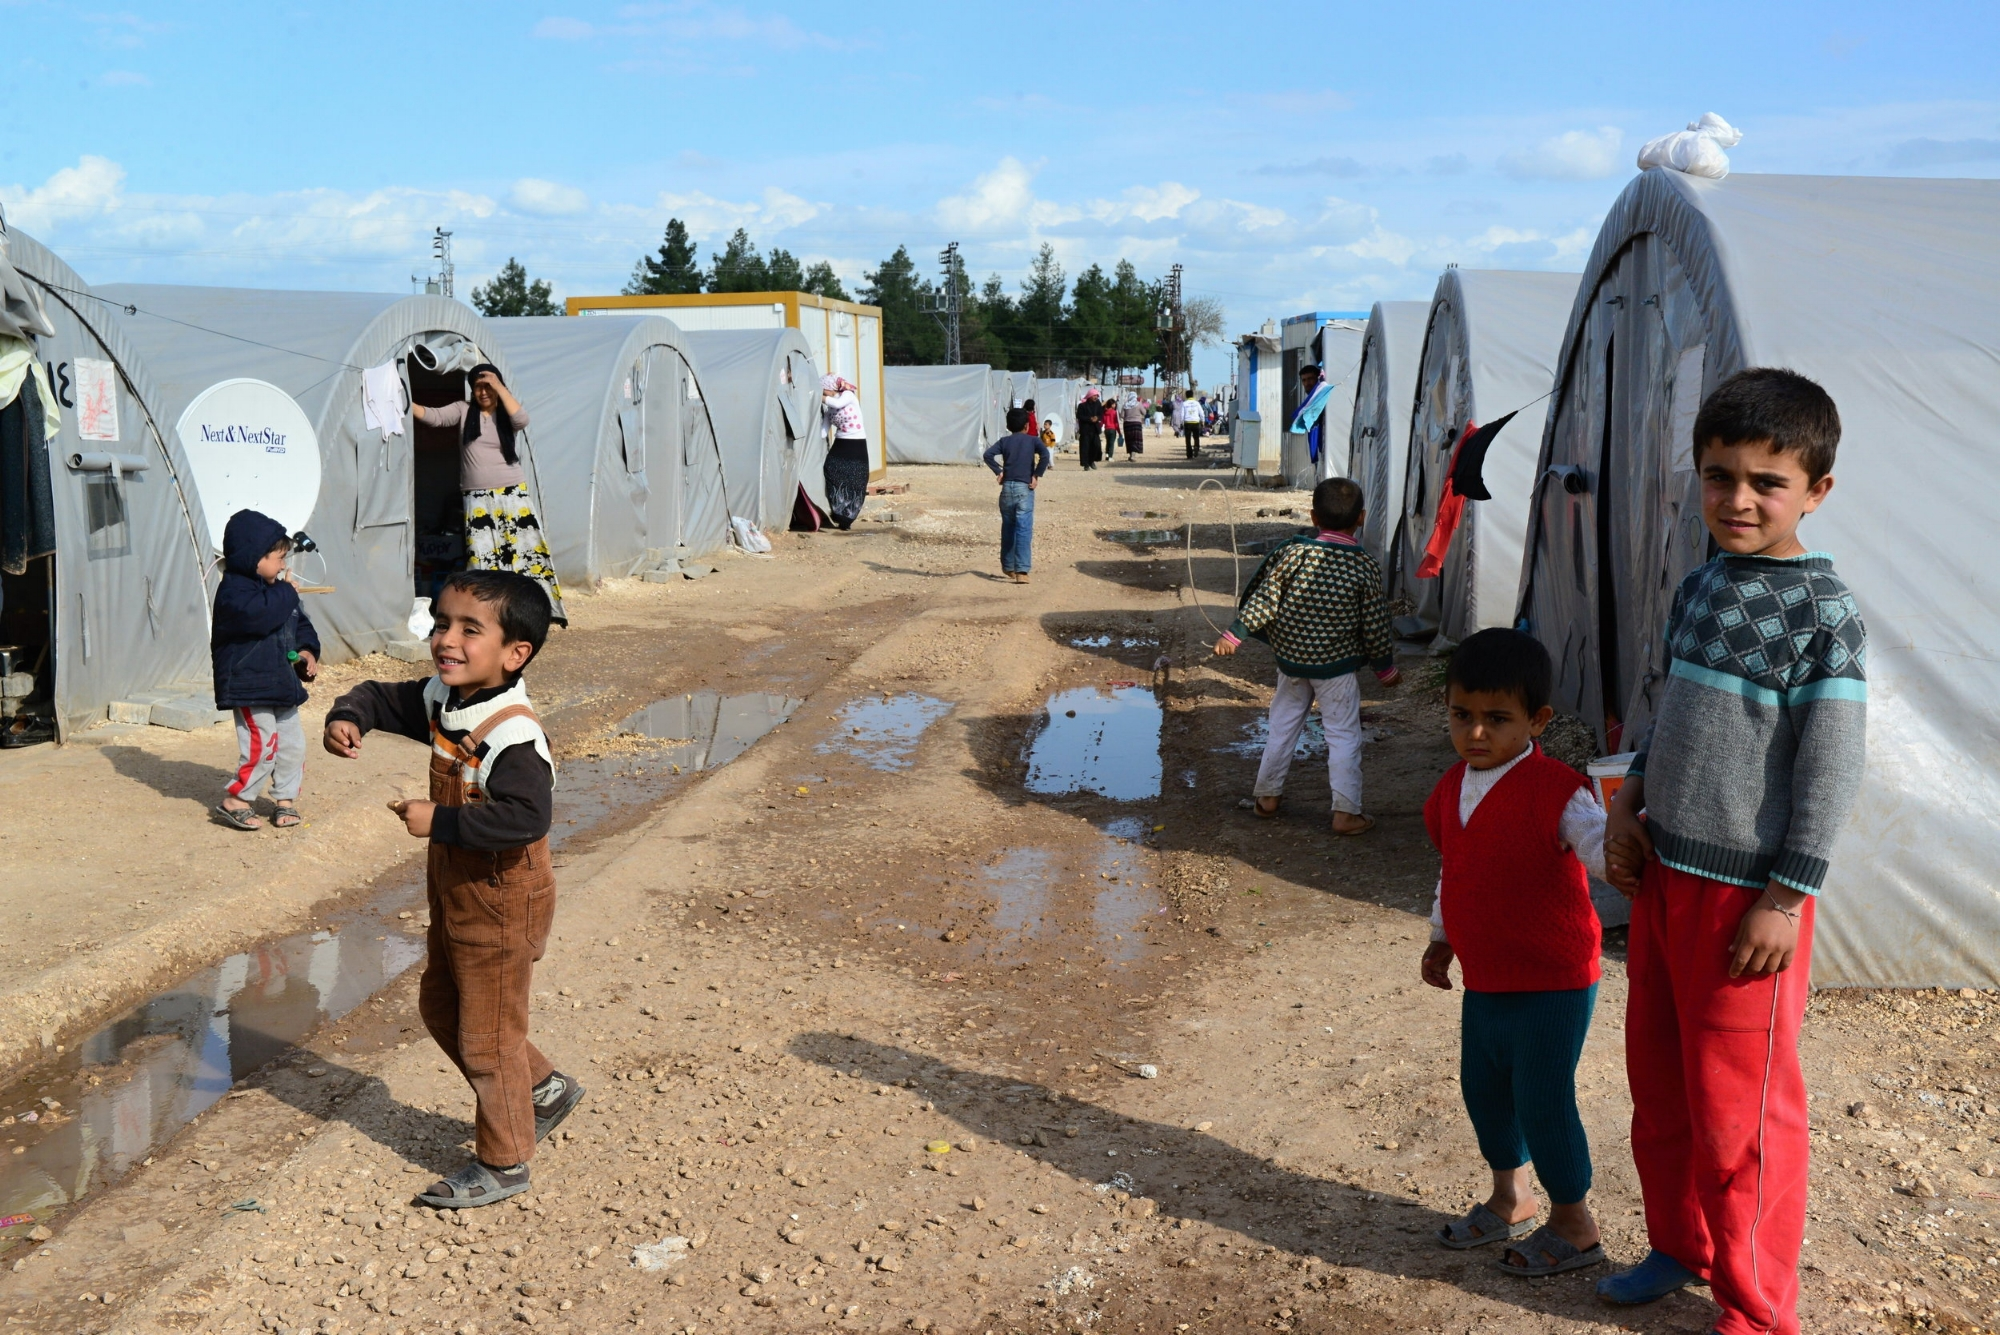 Refugee Camps - Give residents access to daily news and educational resources